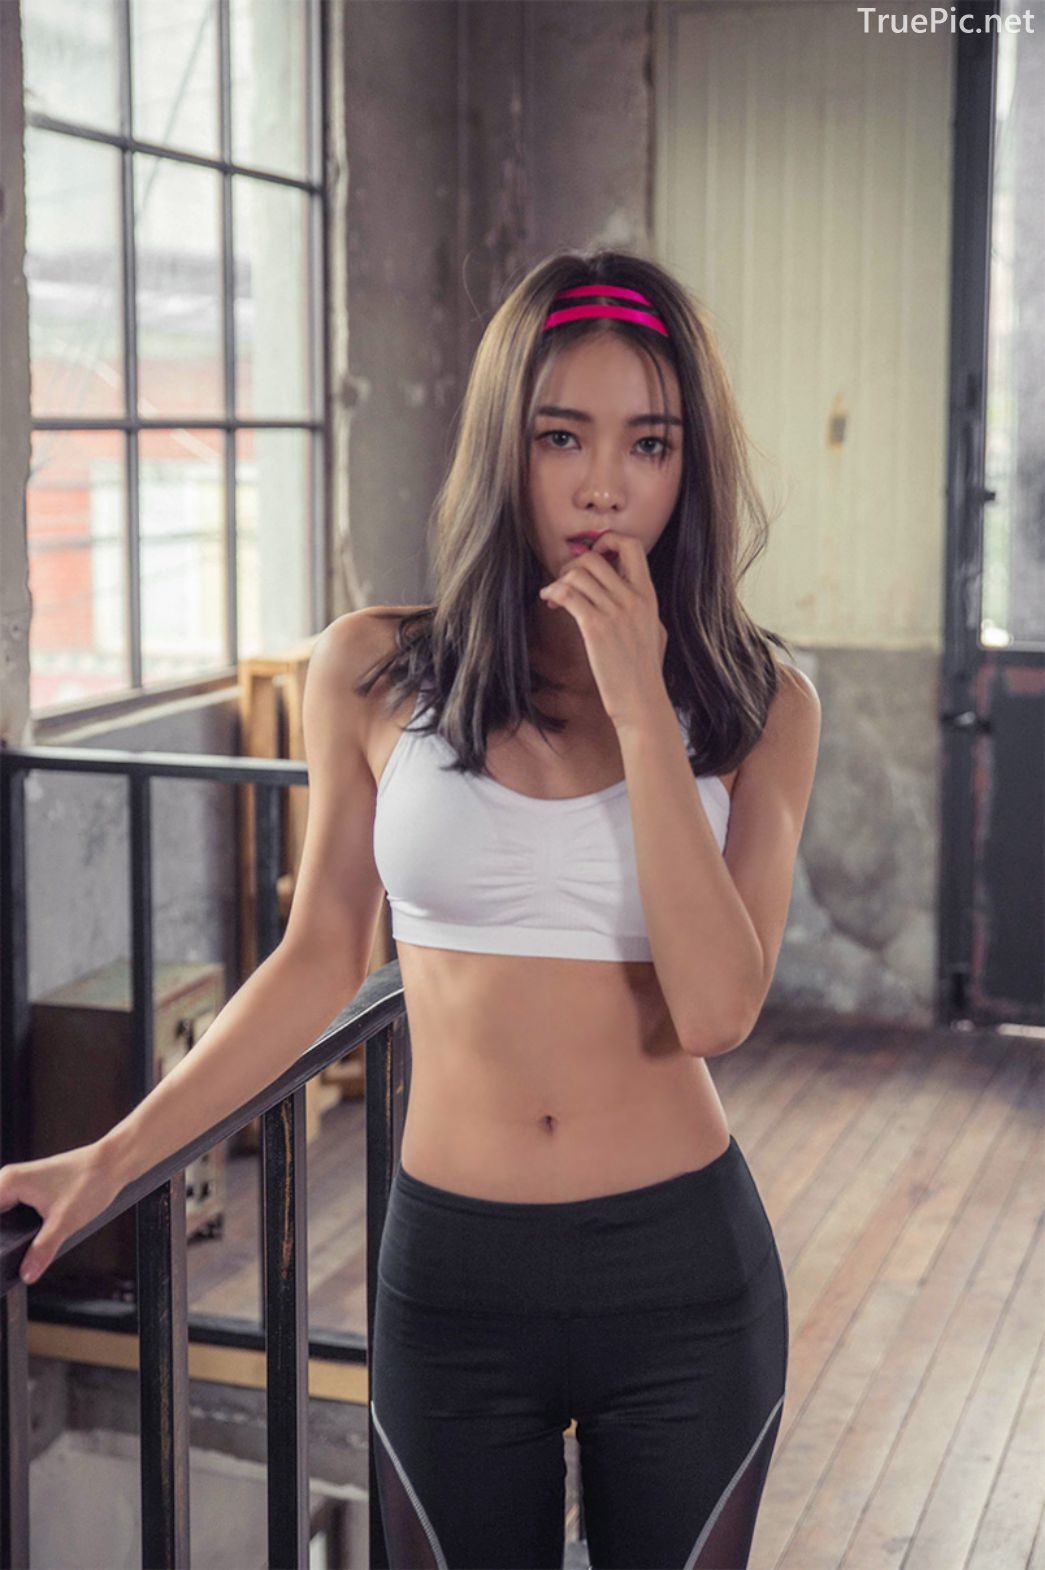 Korean Fashion Model - An Seo Rin - Active Fitnees Set Collection - TruePic.net - Picture 4